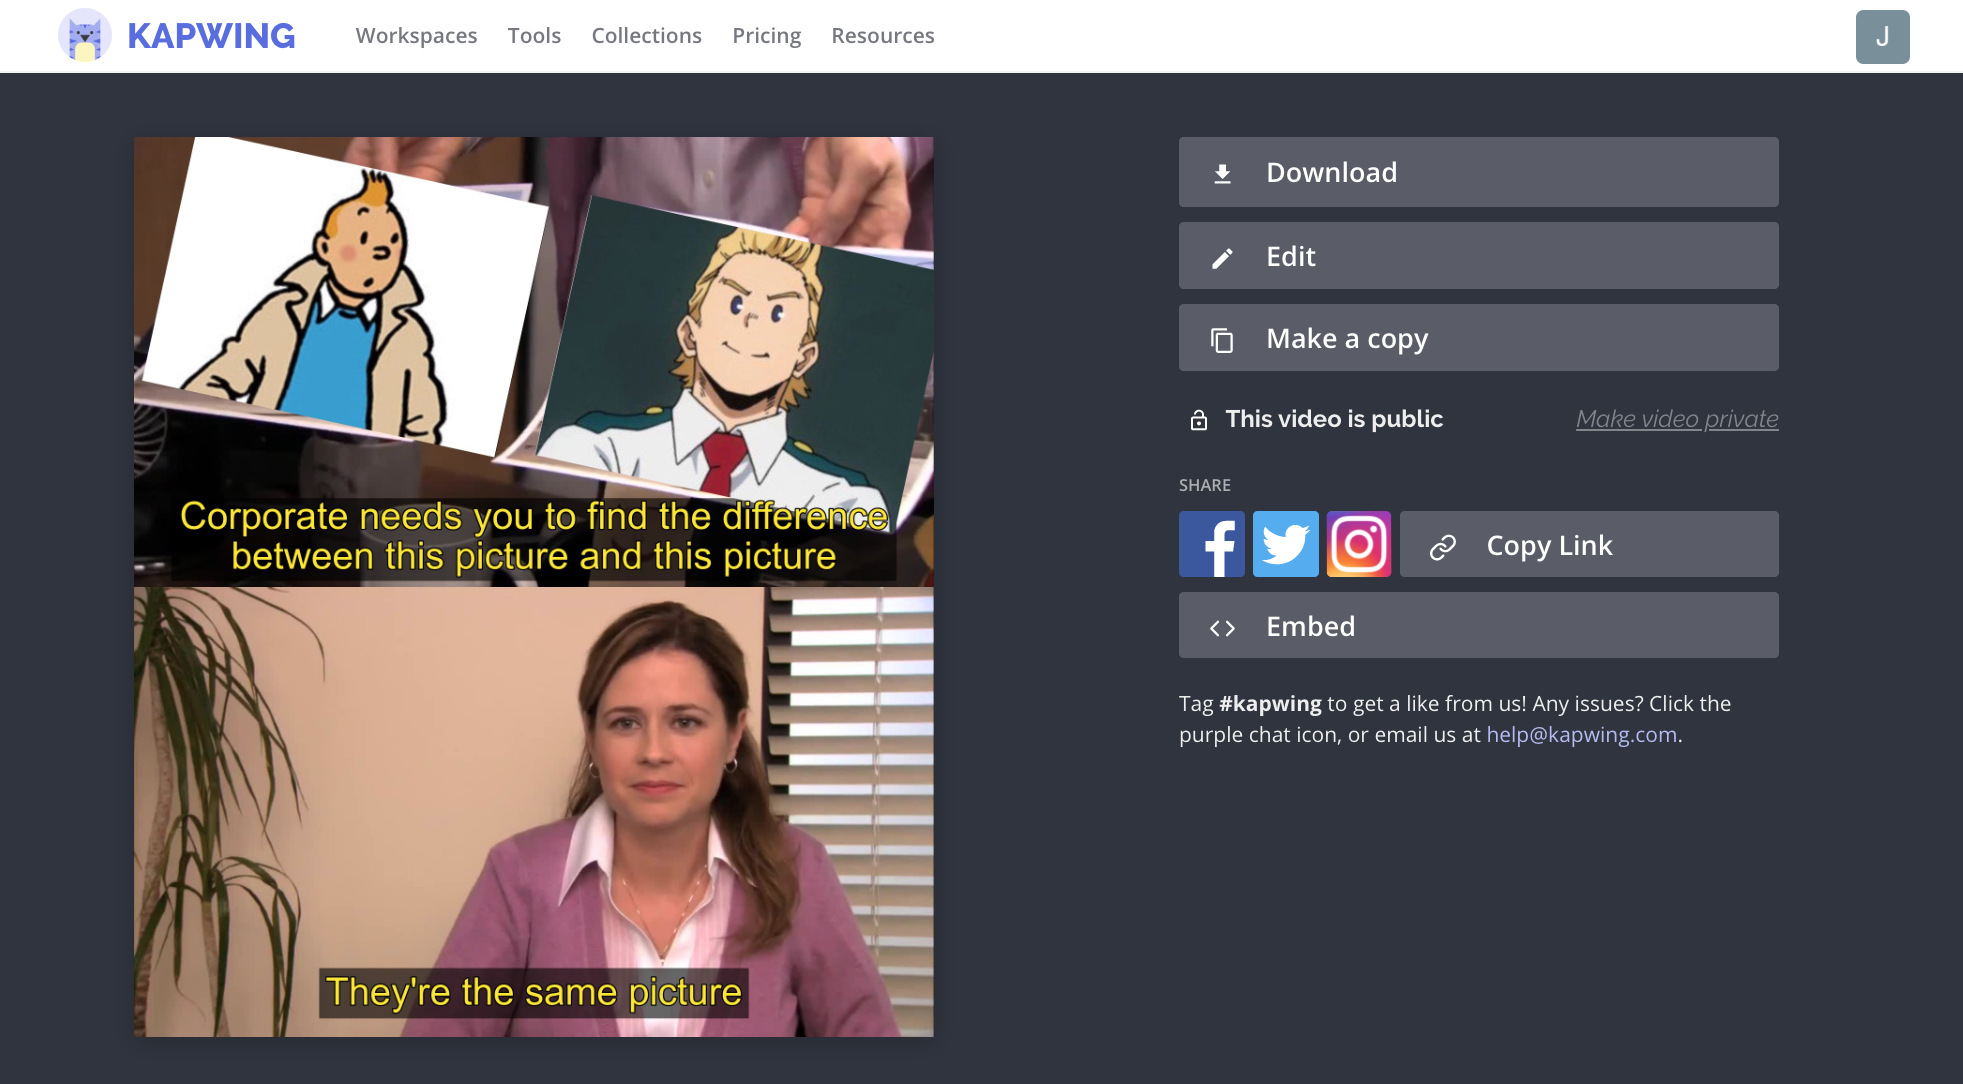 Custom Meme Generator: Make a Meme With Your Own Image